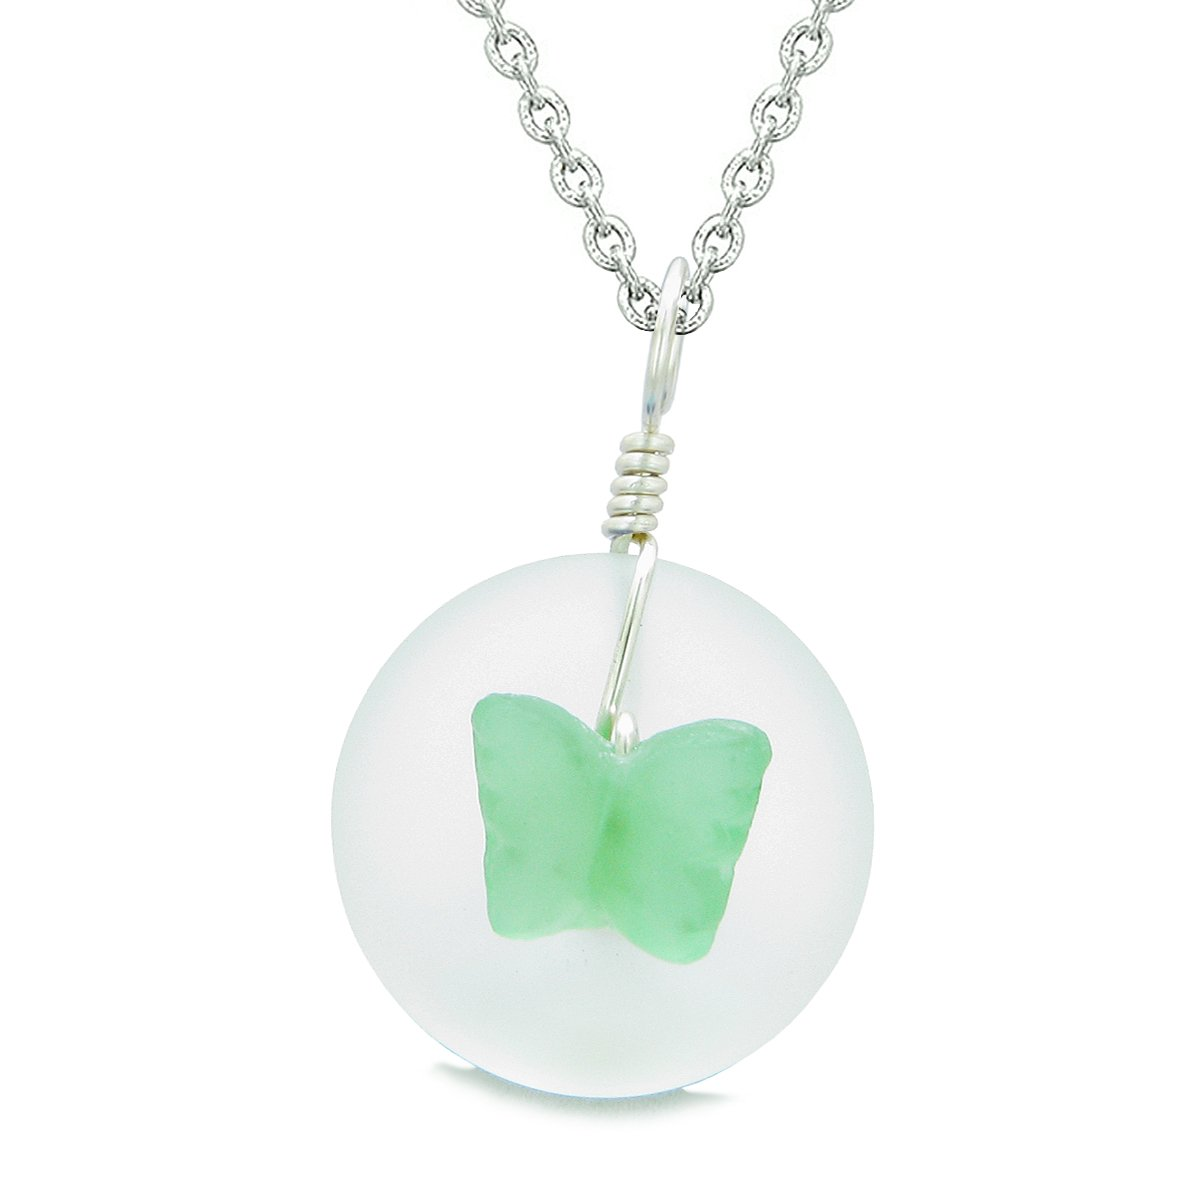 Lucky Butterfly Sea Glass Donut Positive Energy Amulet White and Neon Green Pendant 18 Inch Necklace